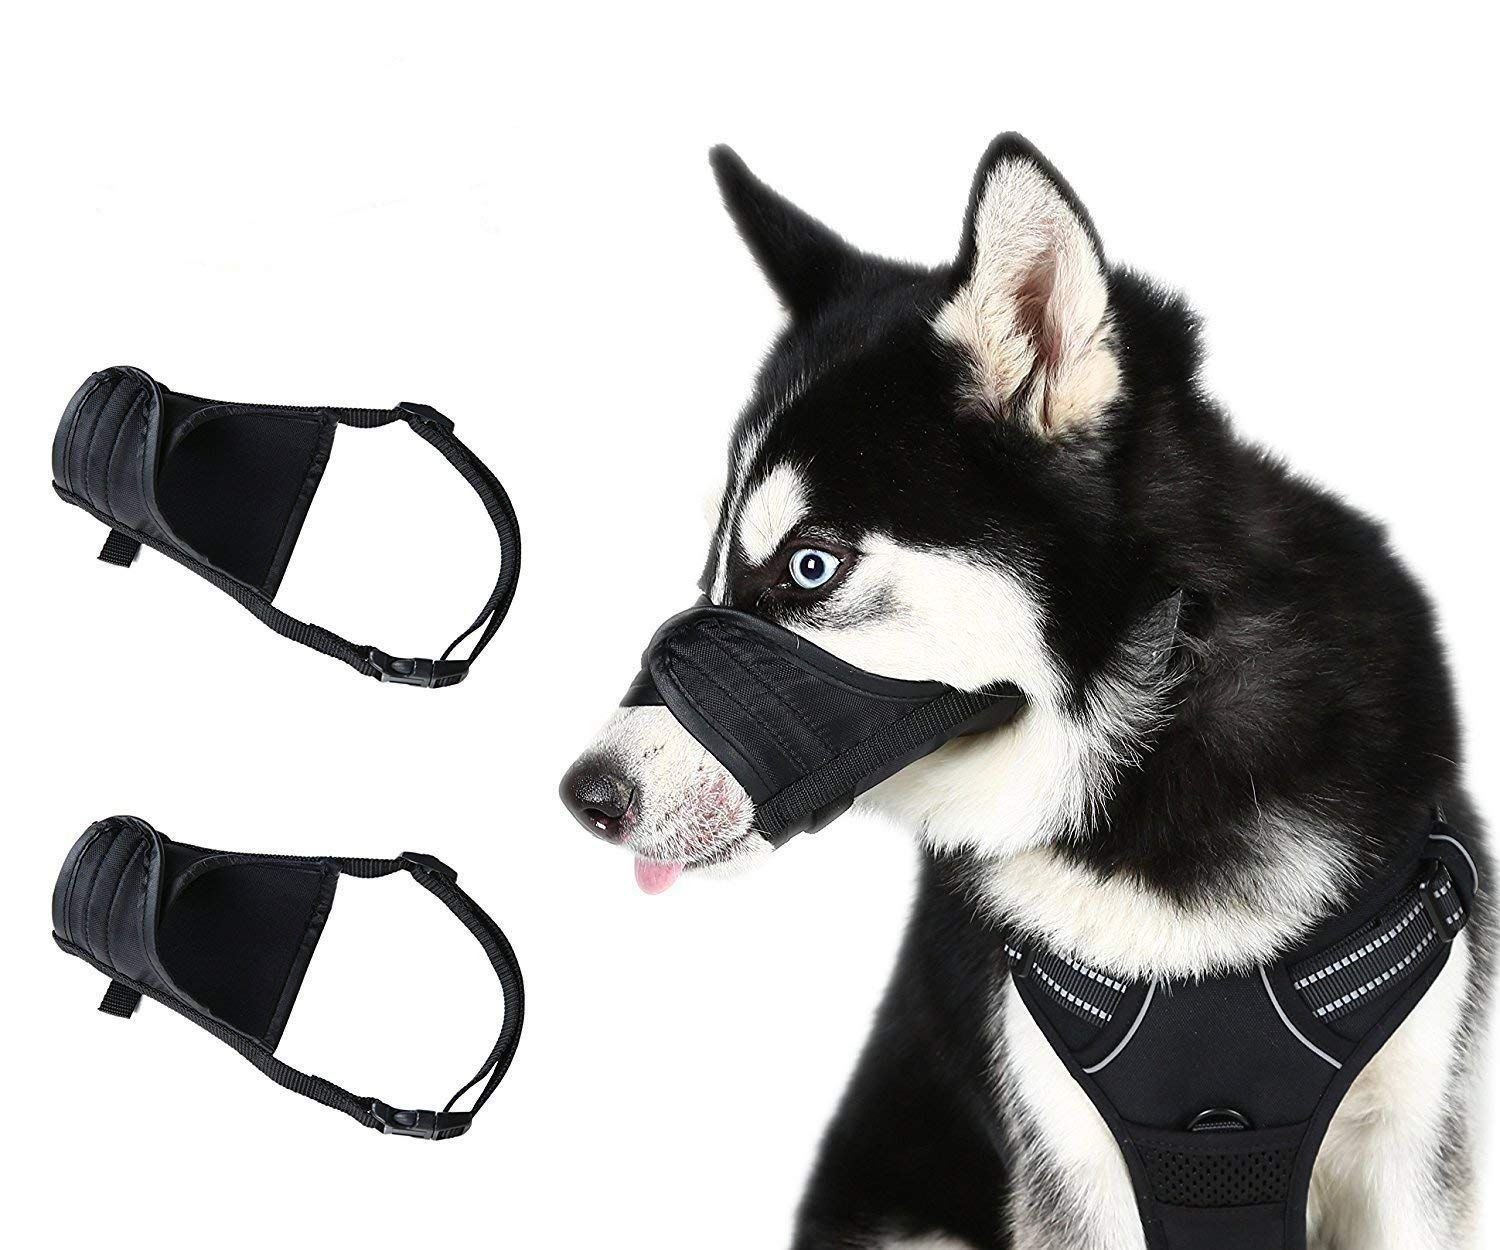 Scenereal Dog Muzzles For Small Medium Large Dogs Adjustable Soft